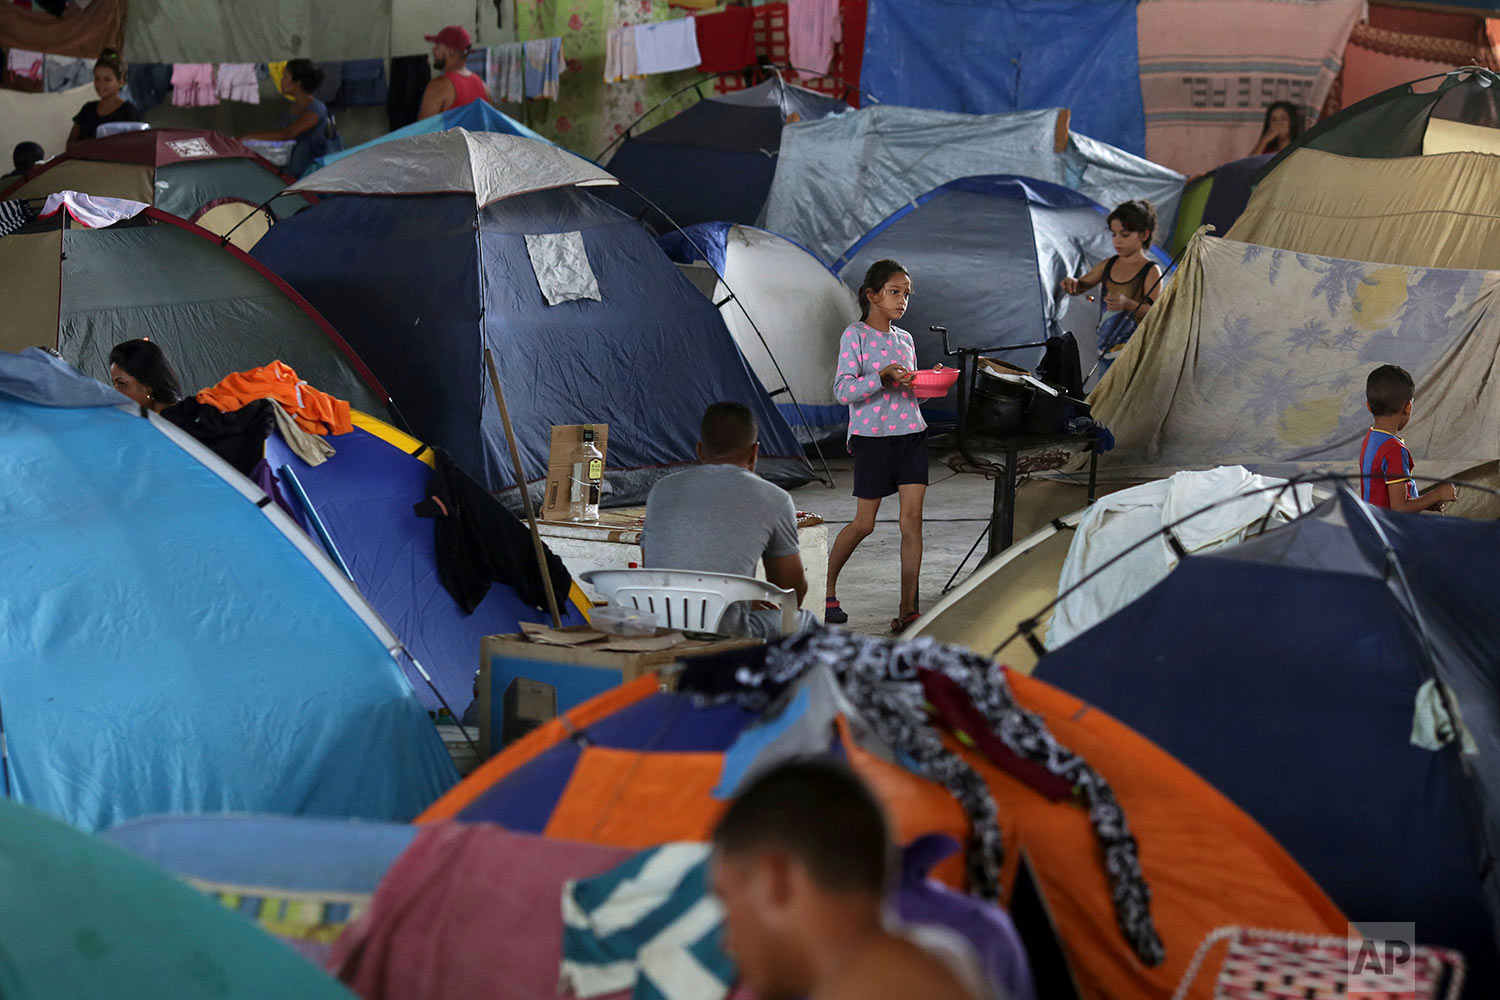 In this March 8, 2018 photo, tents fill the Tancredo Neves Gymnasium that is operating as a shelter for Venezuelans in Boa Vista, Roraima state, Brazil. (AP Photo/Eraldo Peres)